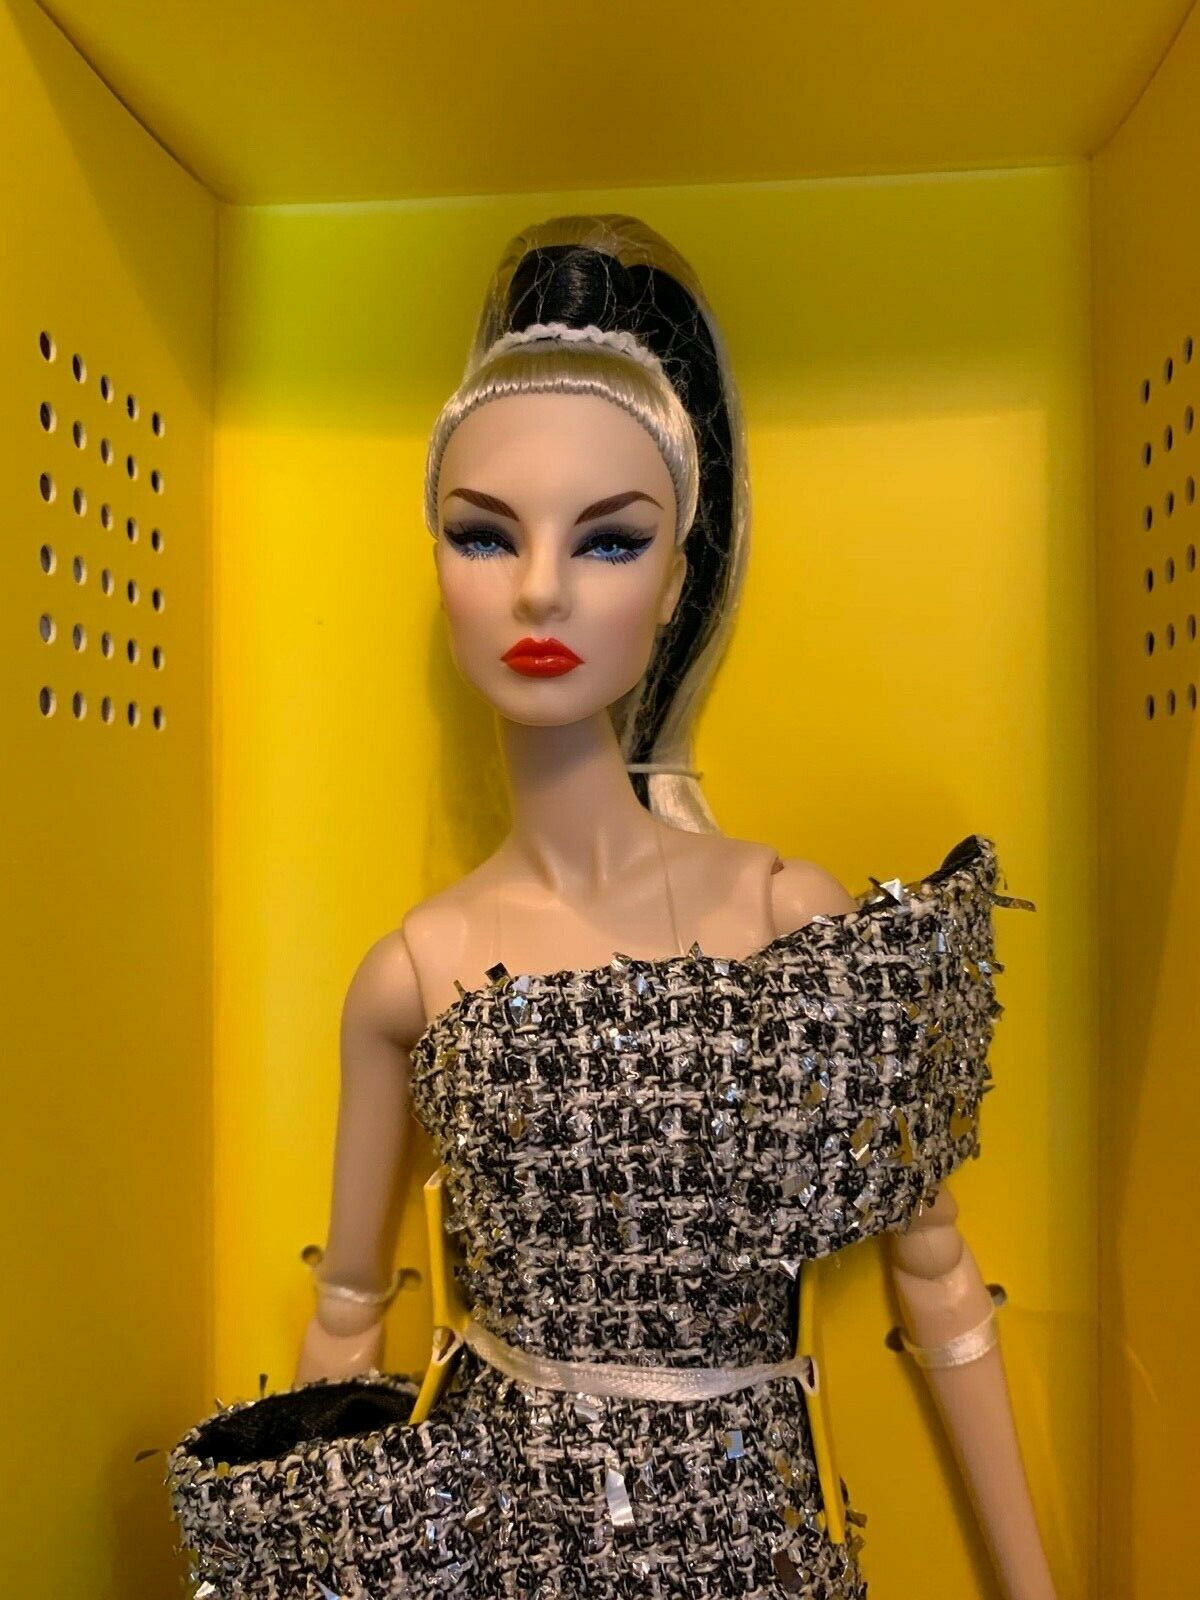 DOLL NUFACE GISELLE  PARIS RUNAWAY  FROM FW19 CONVENTION  NRFB FASHION ROYALTY